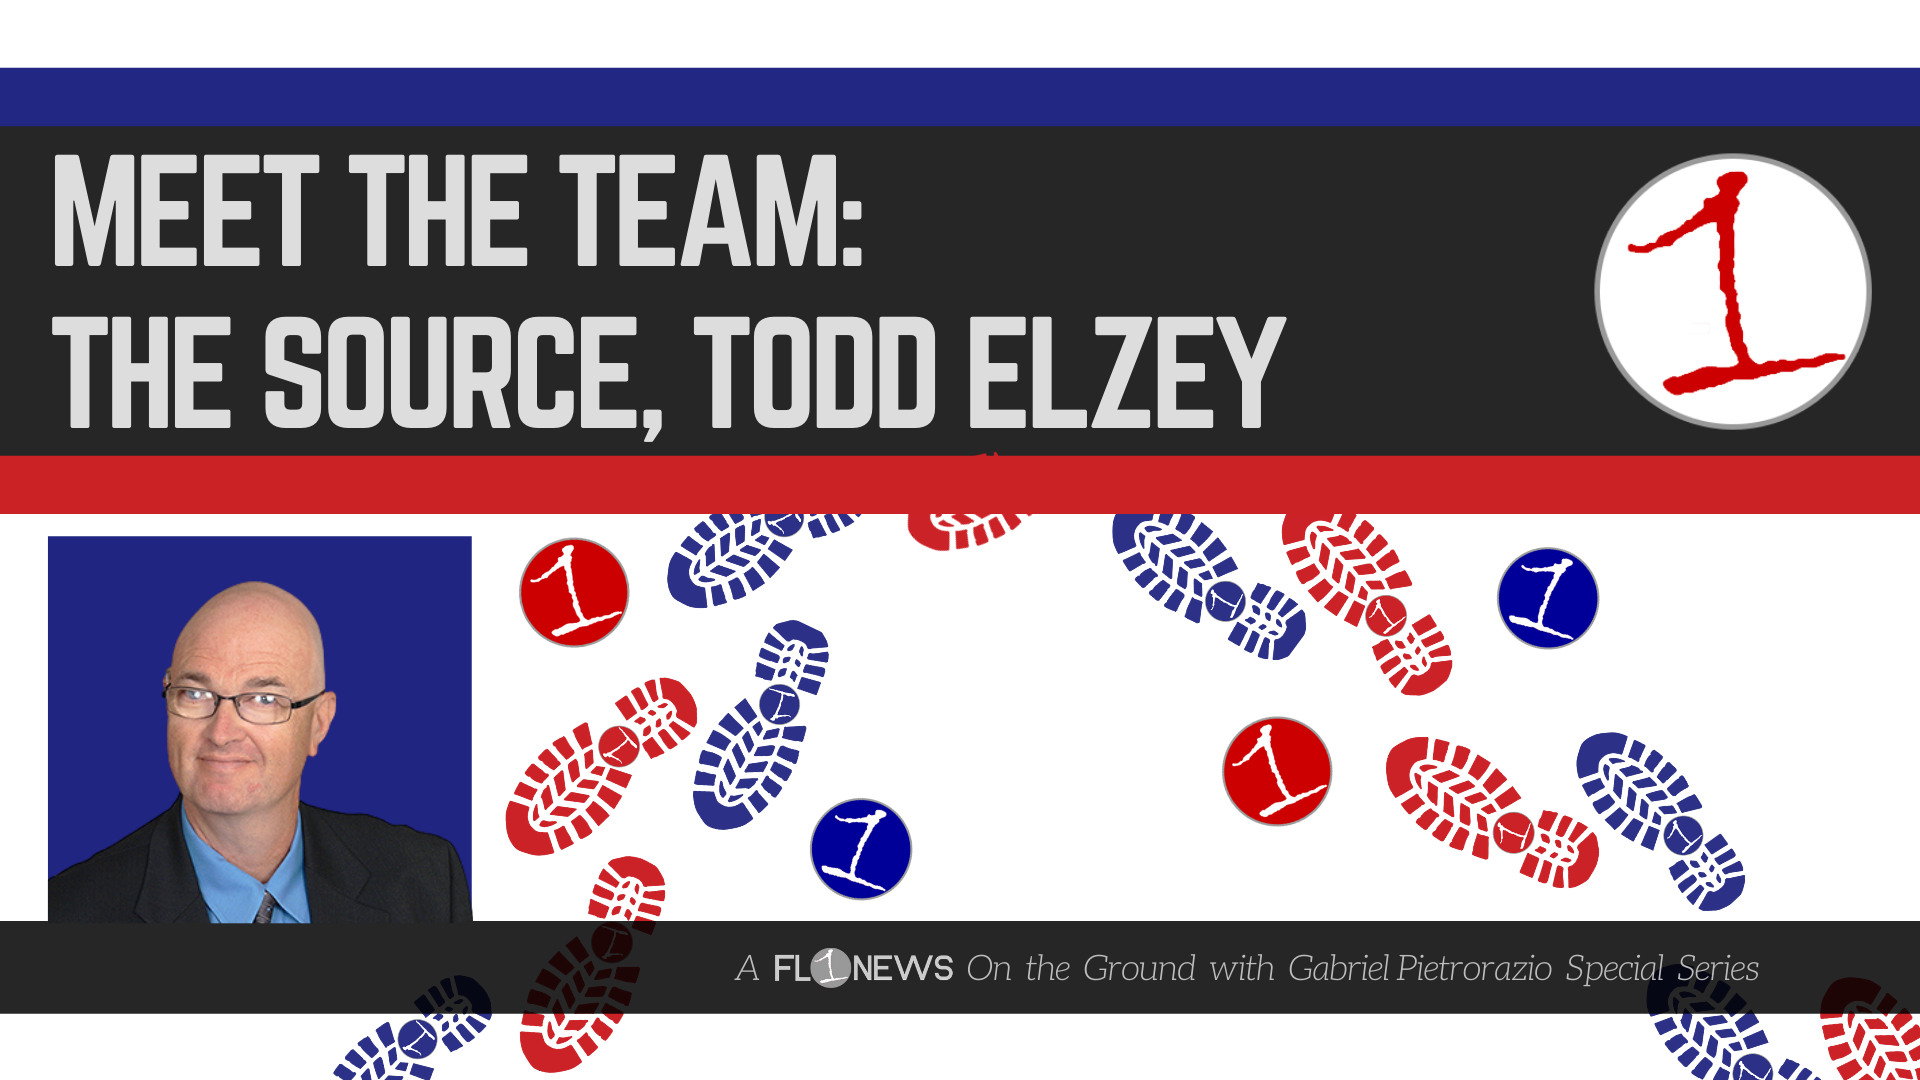 MEET THE TEAM: The Source, Todd Elzey